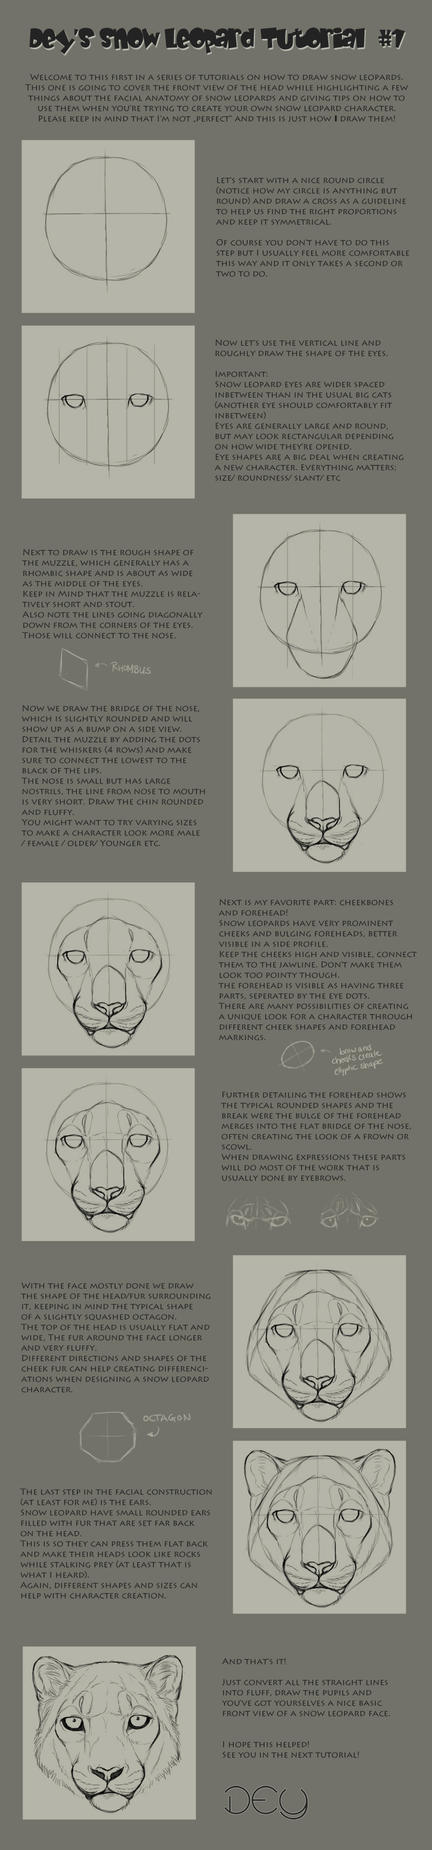 Tutorial: Snow Leopard Head #1 by DeyVarah